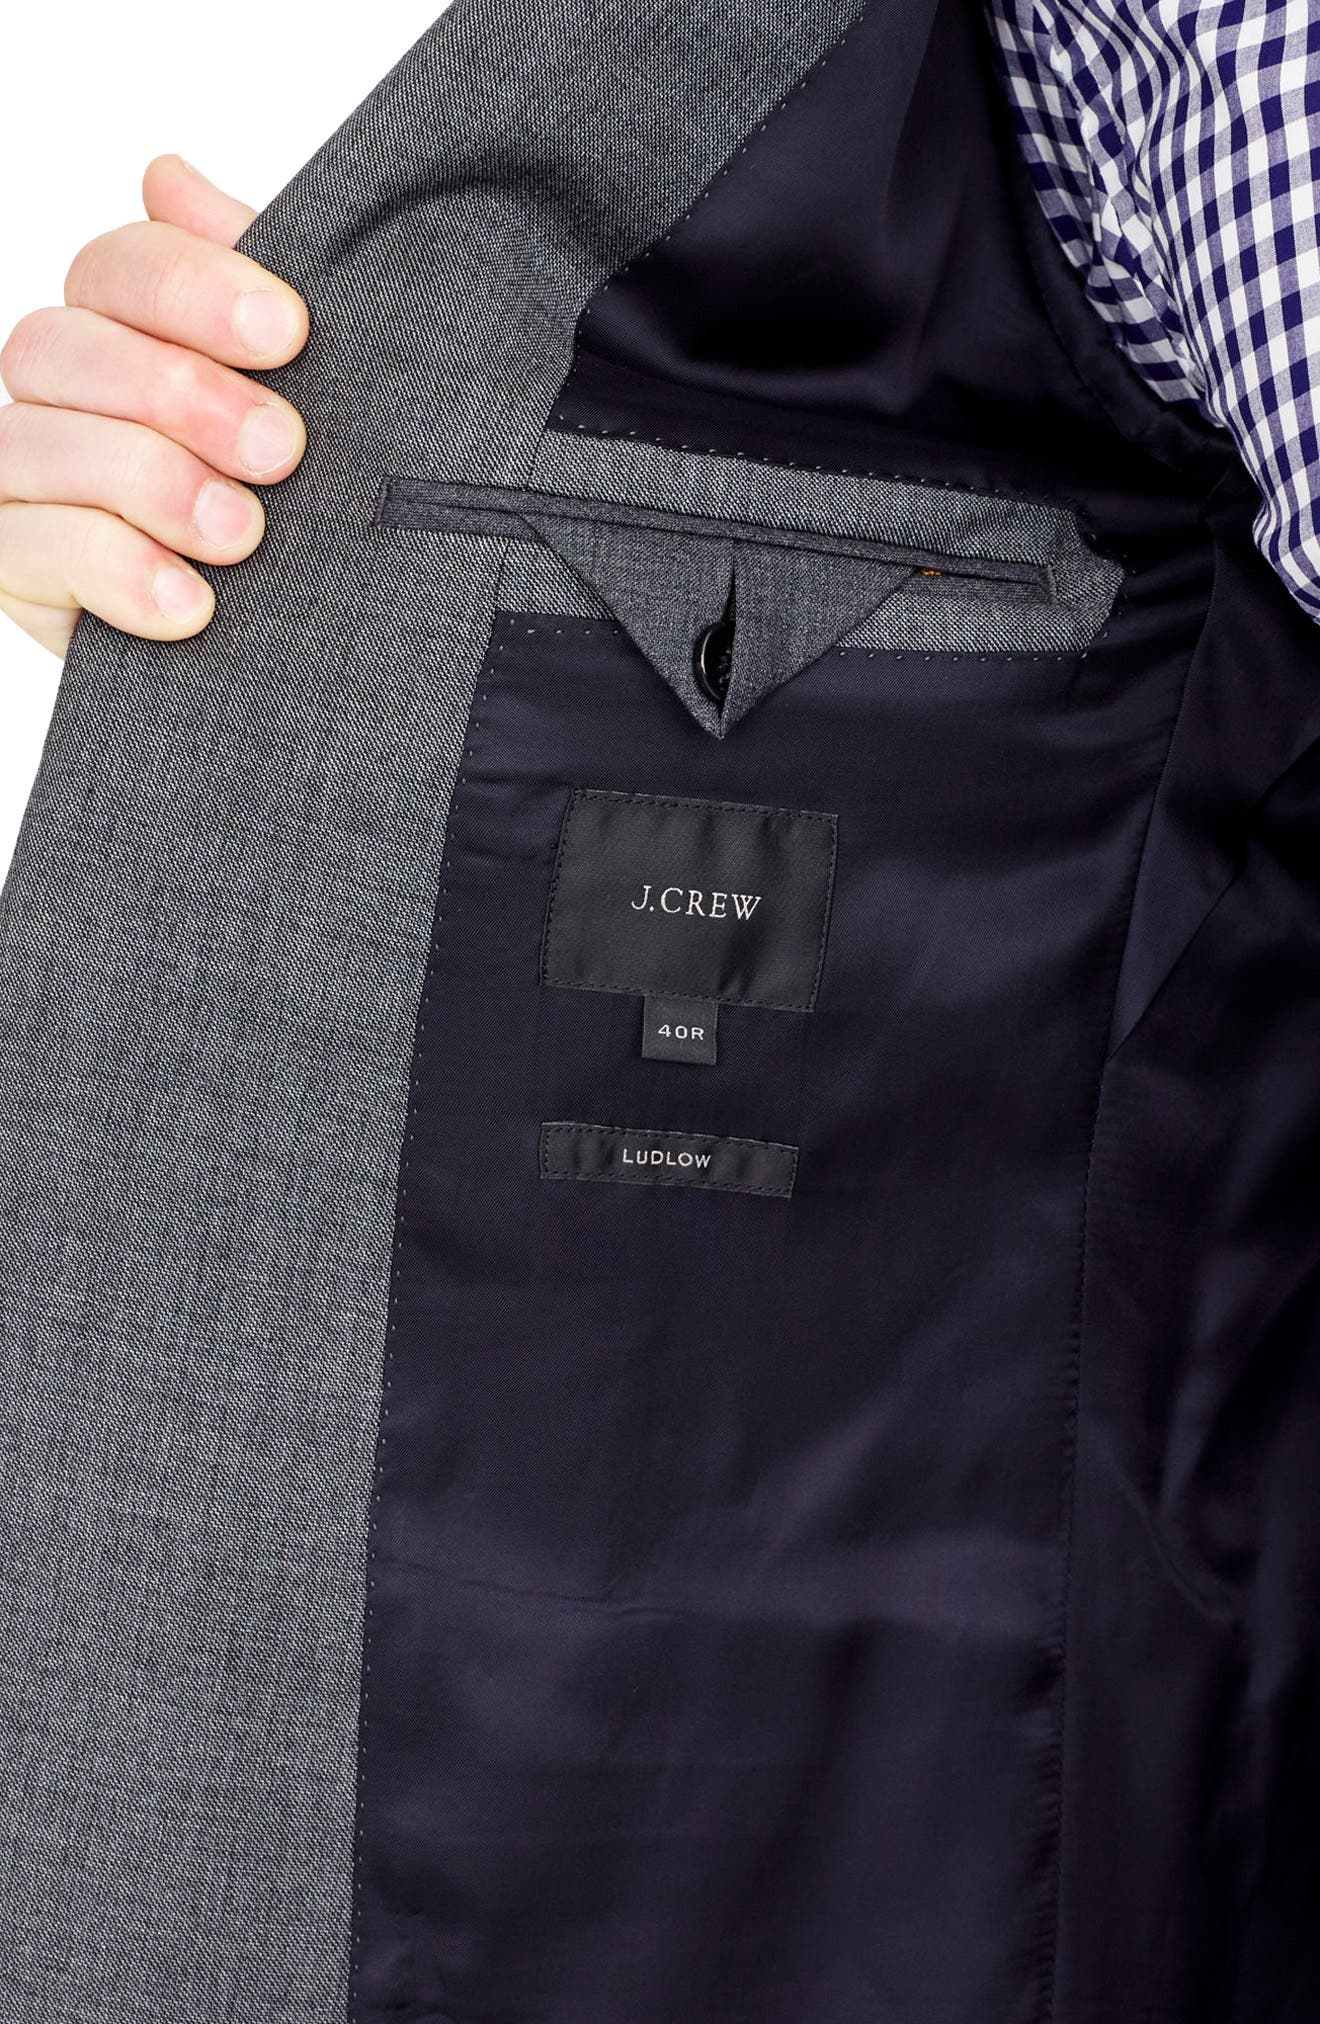 J.Crew Ludlow Trim Fit Solid Wool Sport Coat,                             Alternate thumbnail 5, color,                             Charcoal